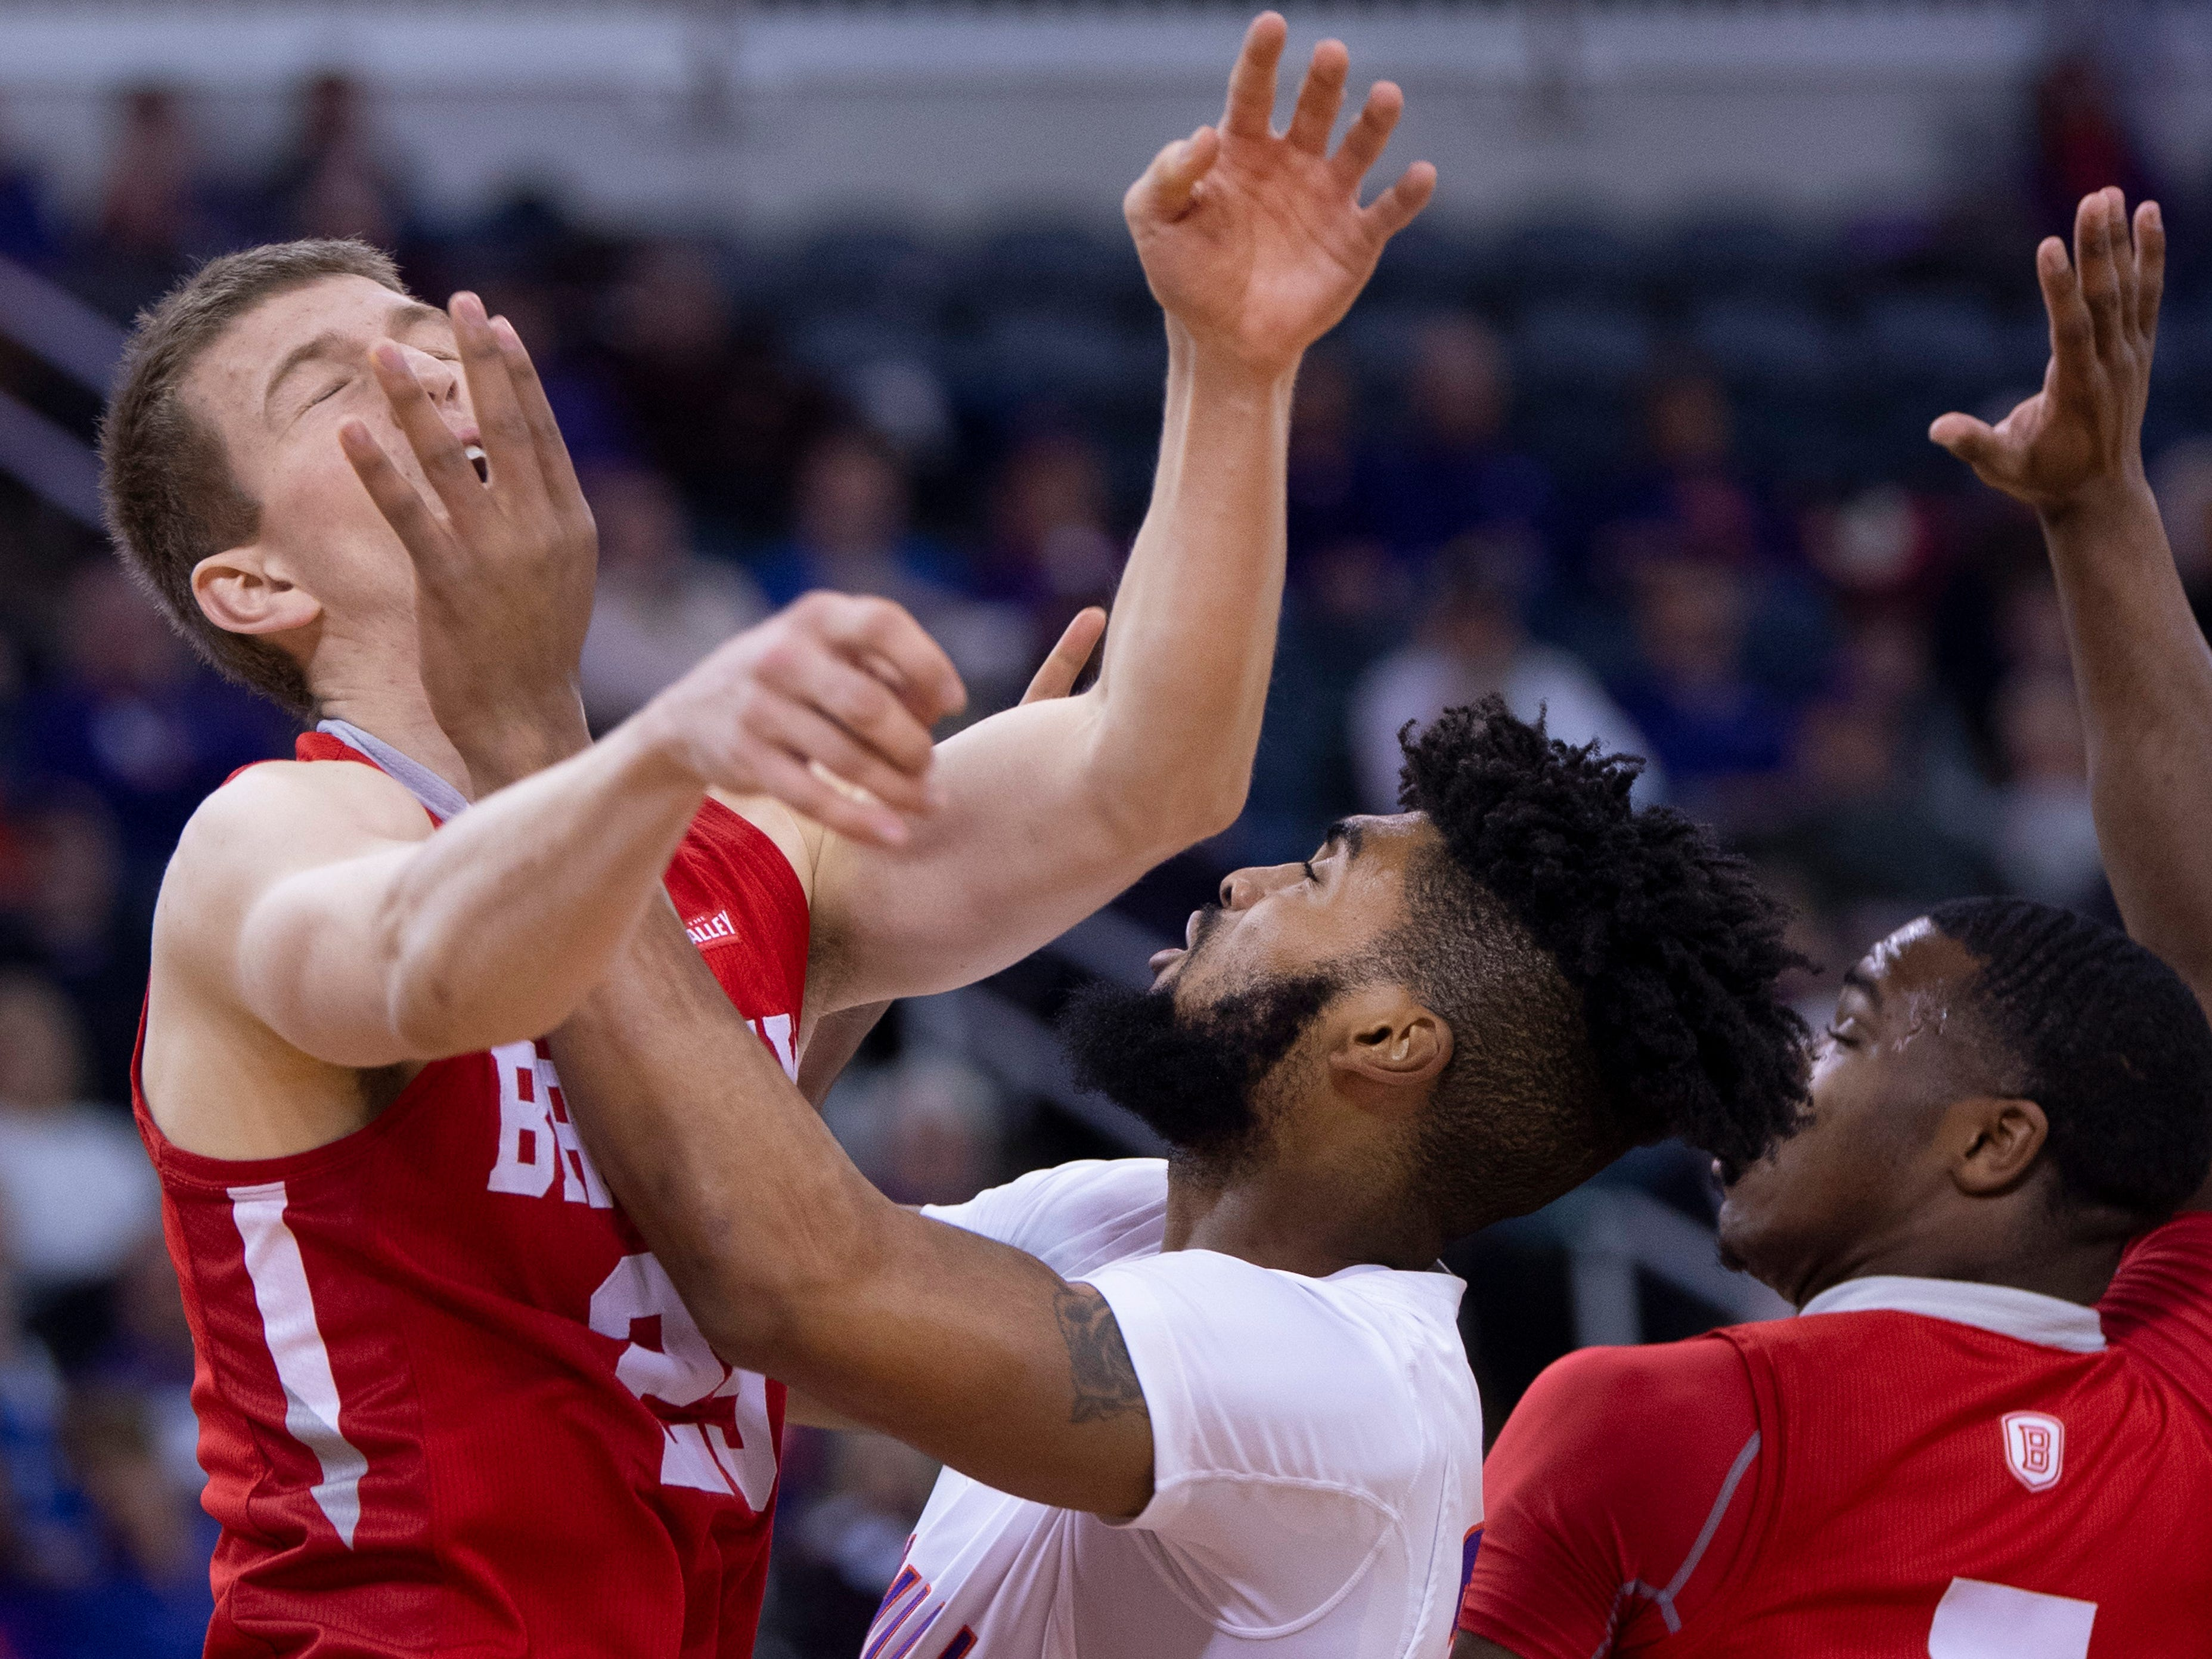 Evansville's K.J. Riley (33) fouls Bradley's Nate Kennell (25) during their game at the Ford Center Wednesday night.